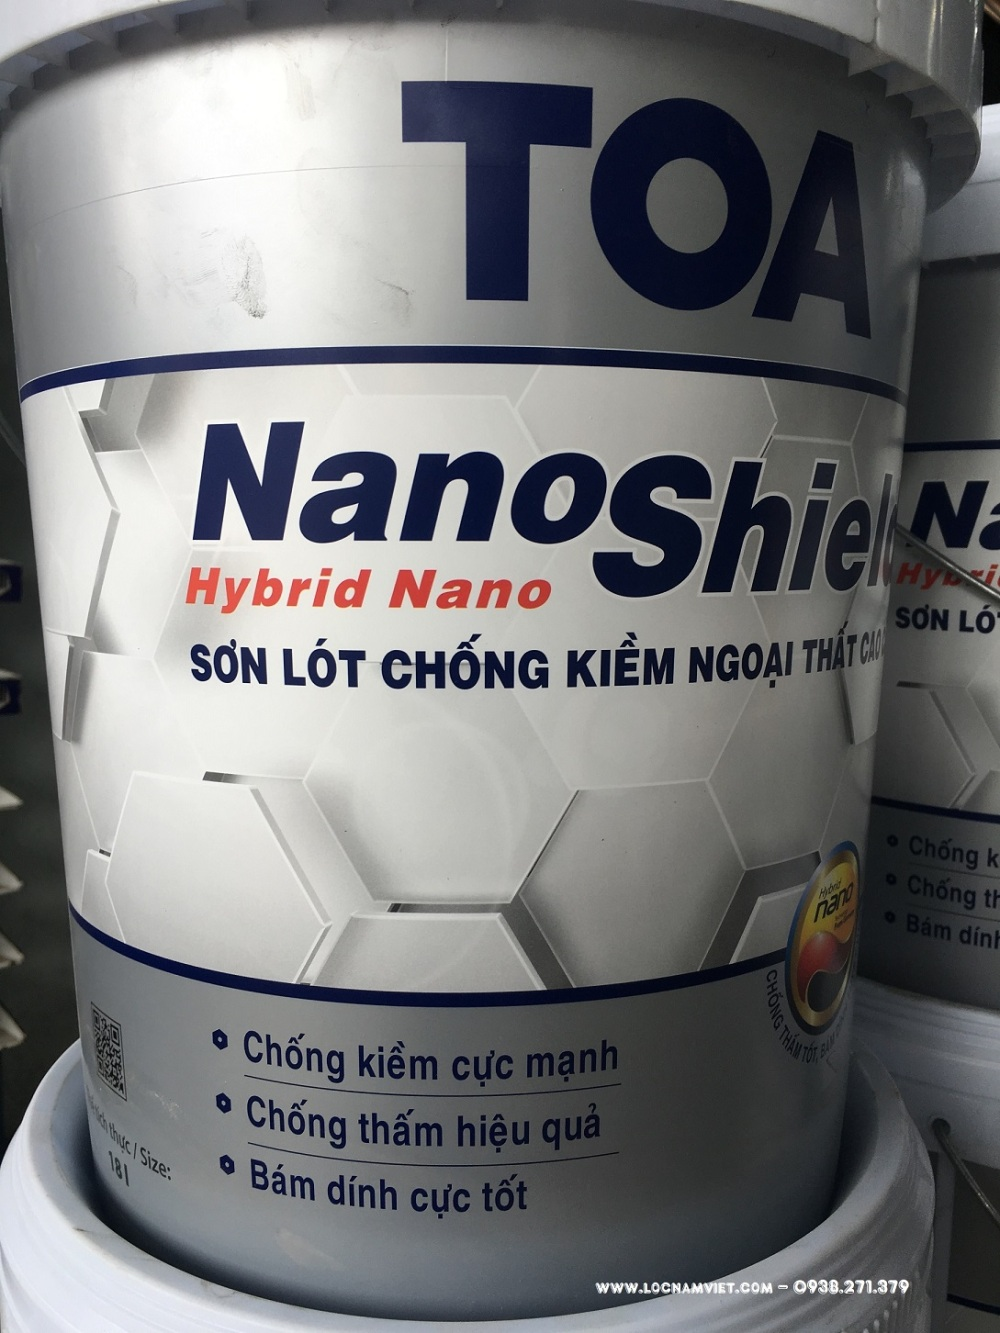 SON LOT CHONG KIEM NGOAI THAT TOA NANOSHIELD - (3)